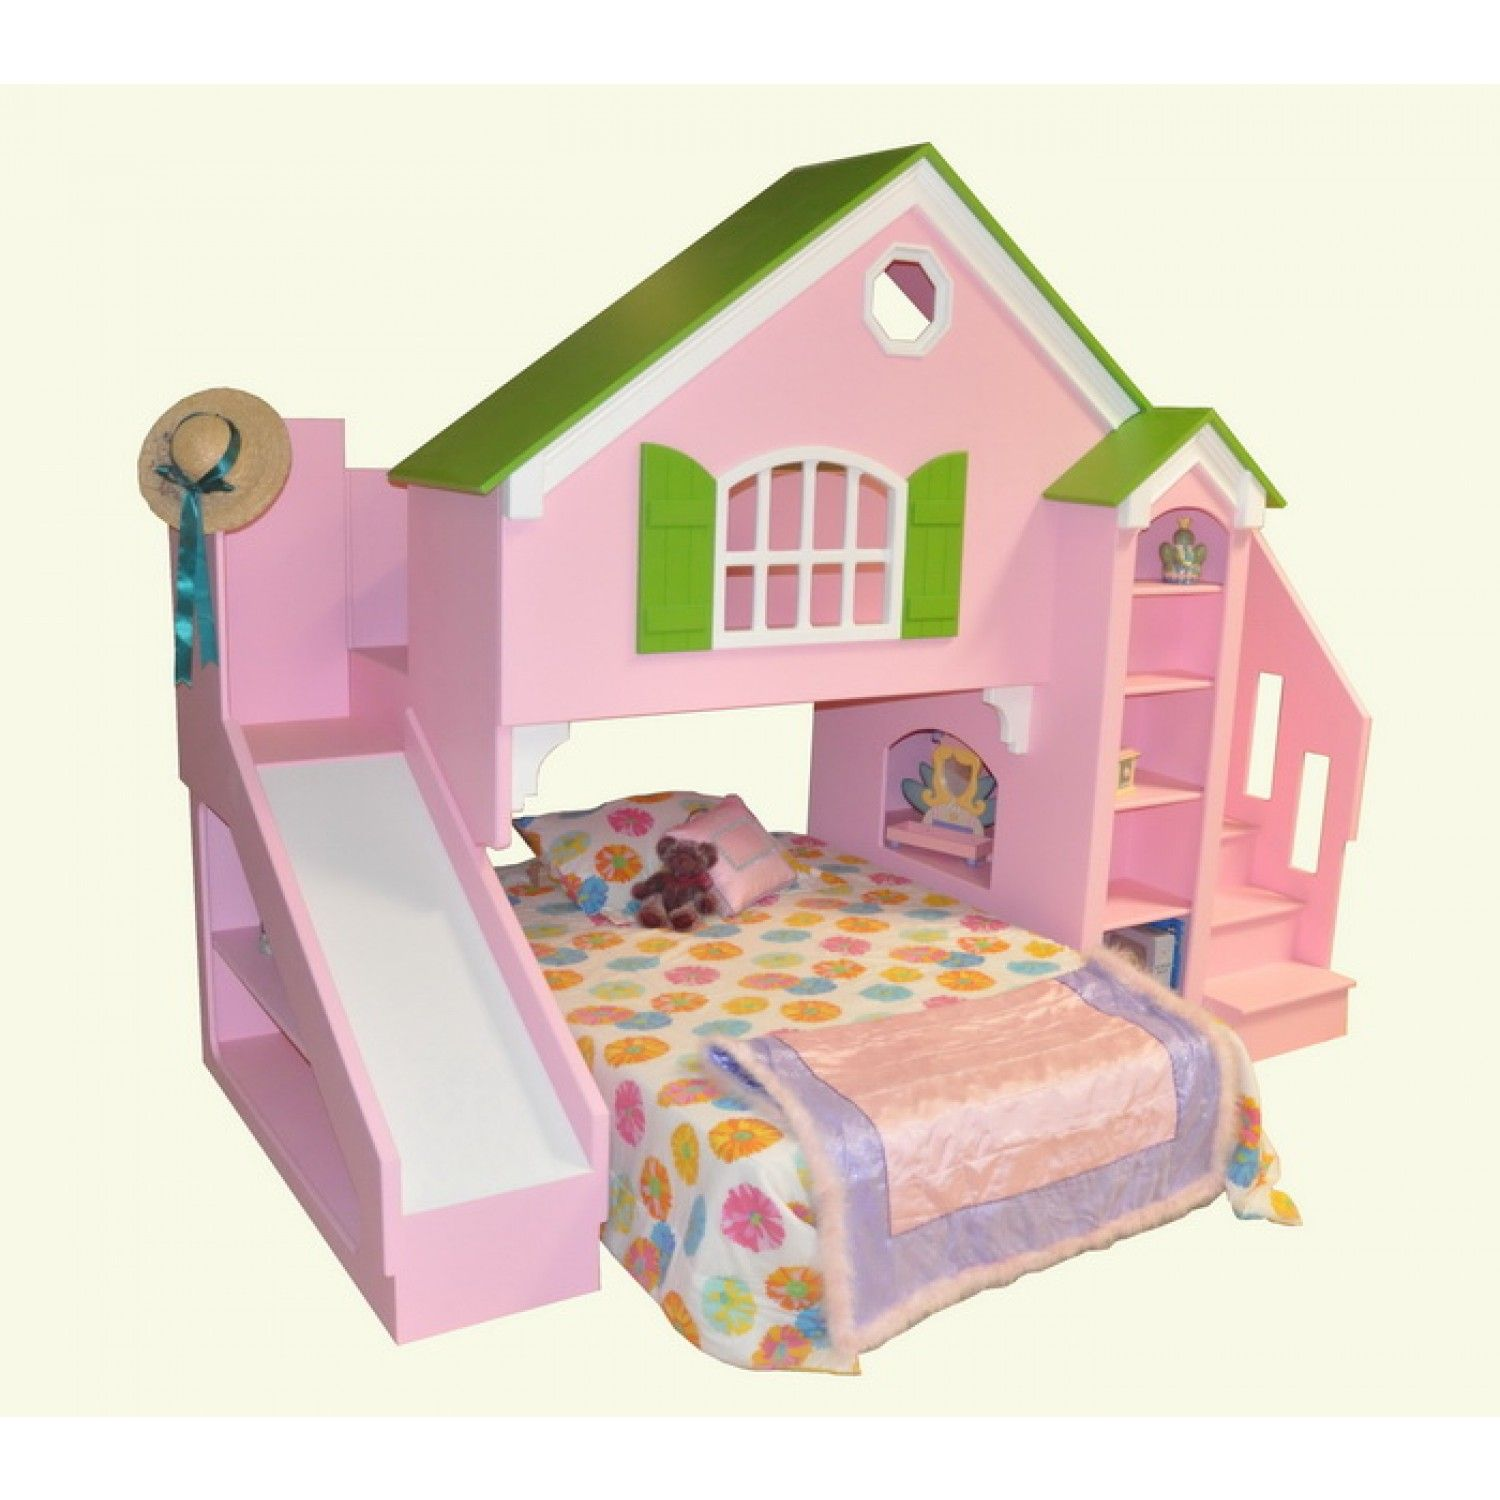 Cool bunk beds with slides - Dollhouse Bunk Bed With Slide Do You Like Disney S Tsum Tsum Plush Toys Visit